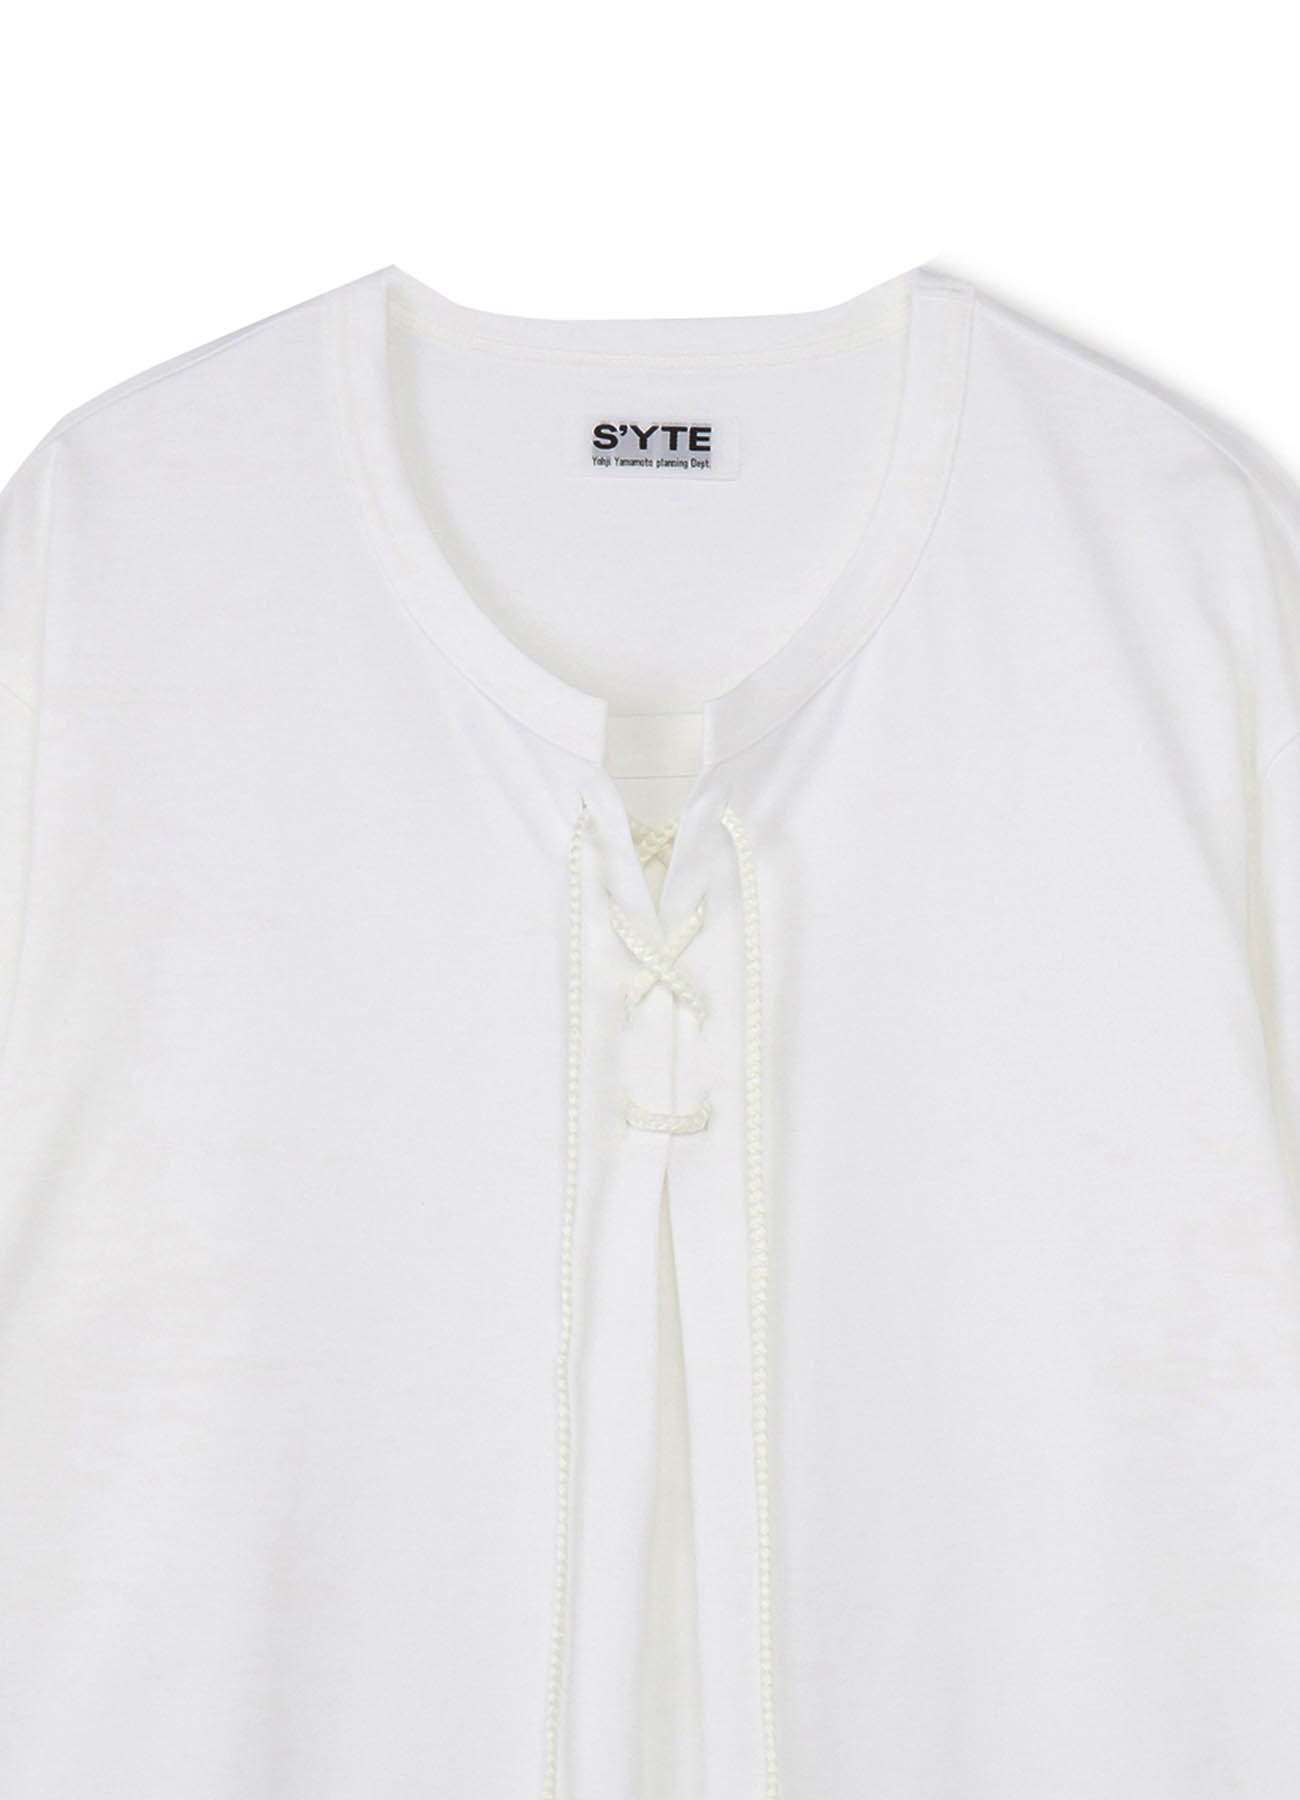 40/2 Cotton Jersey Lace-up Pullover Short Sleeve T